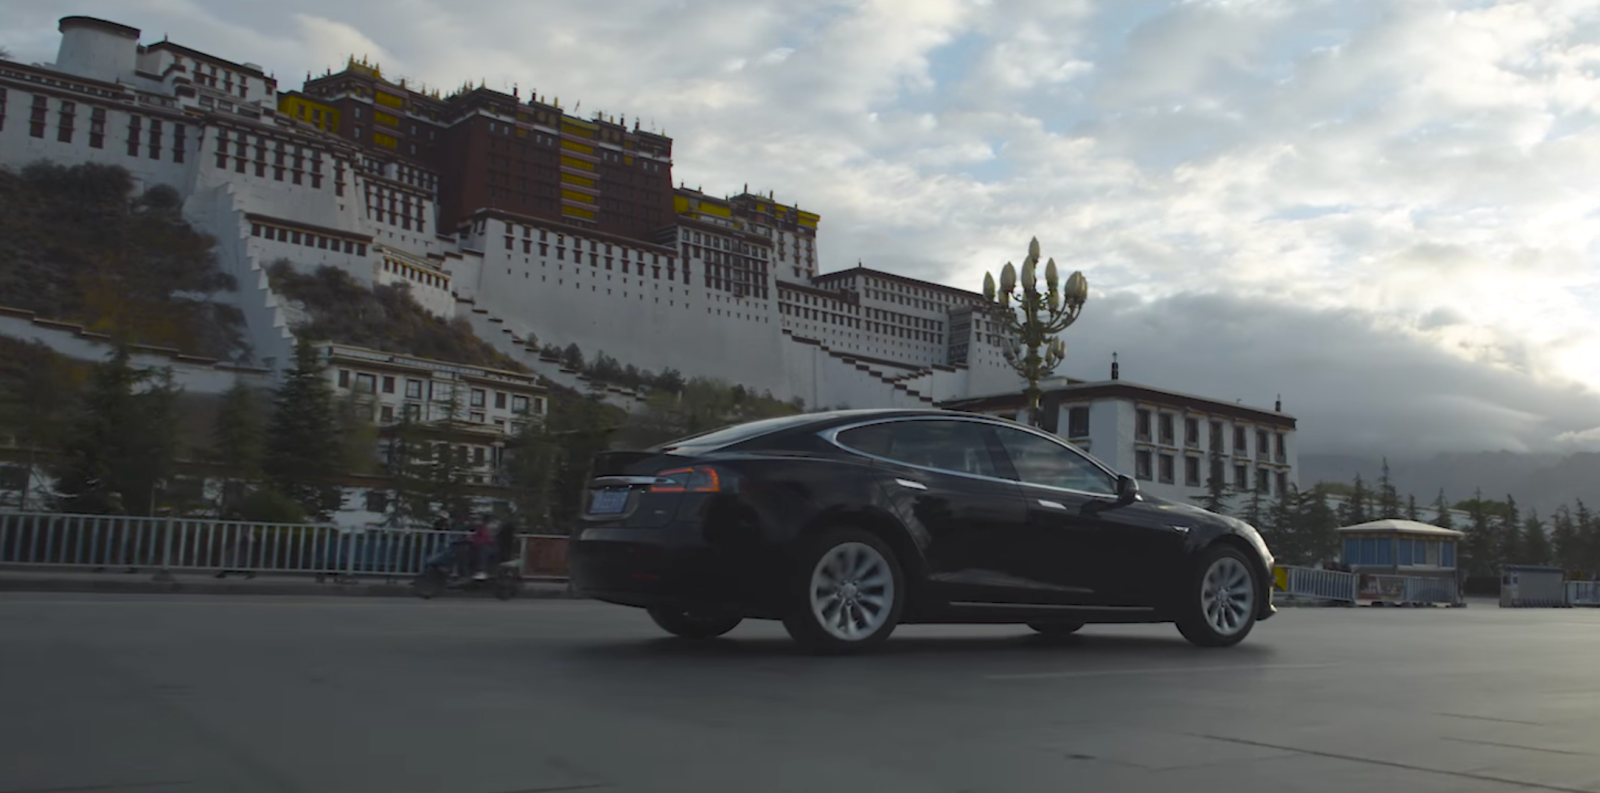 Tesla highlights growth in China, says 1,000 Superchargers